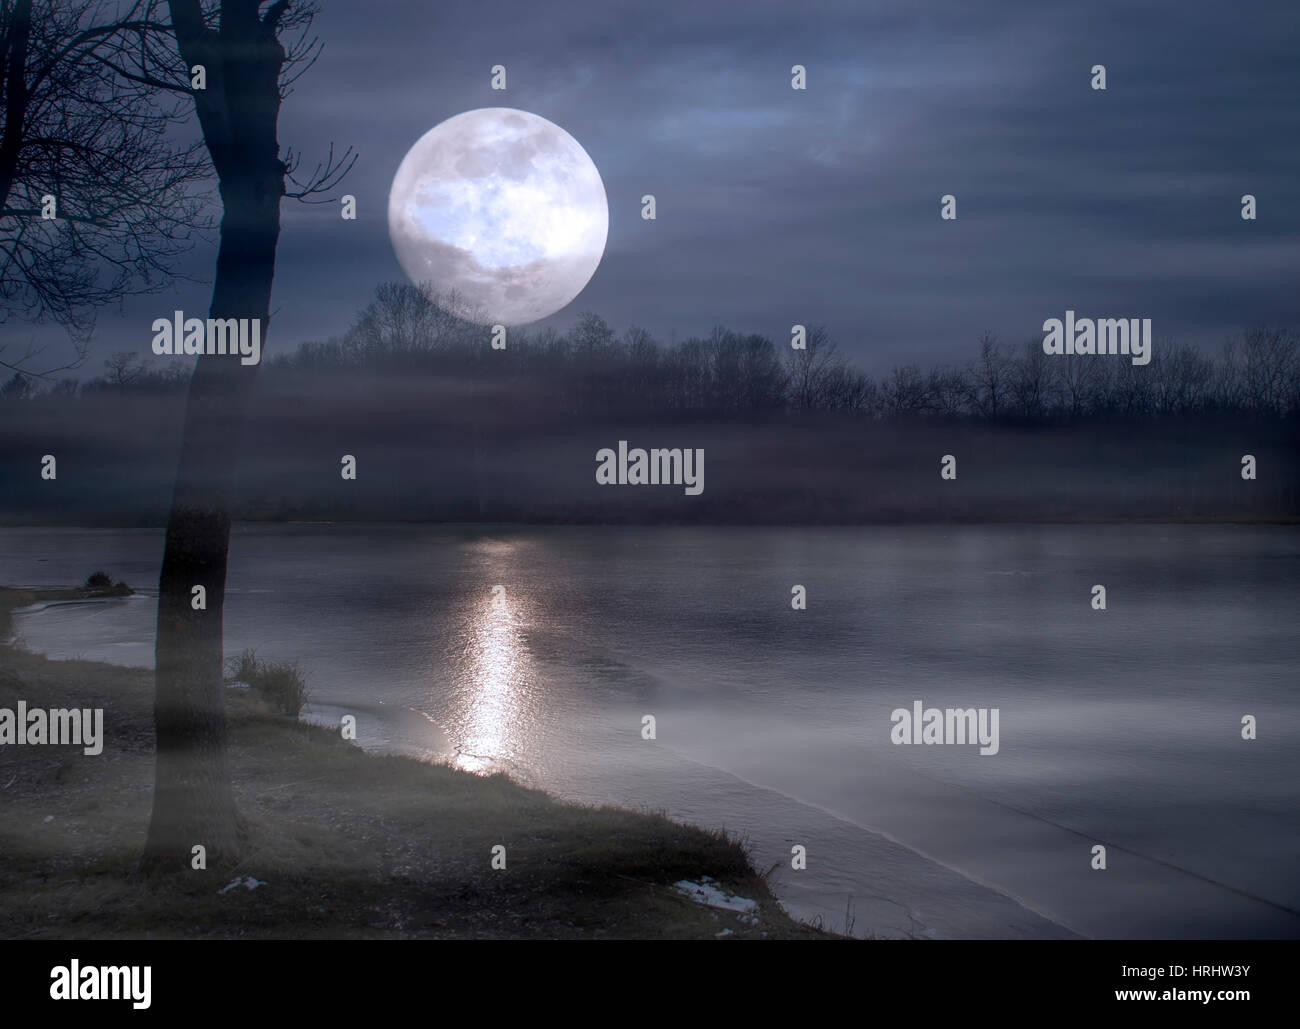 Super moon and lake at night - Stock Image